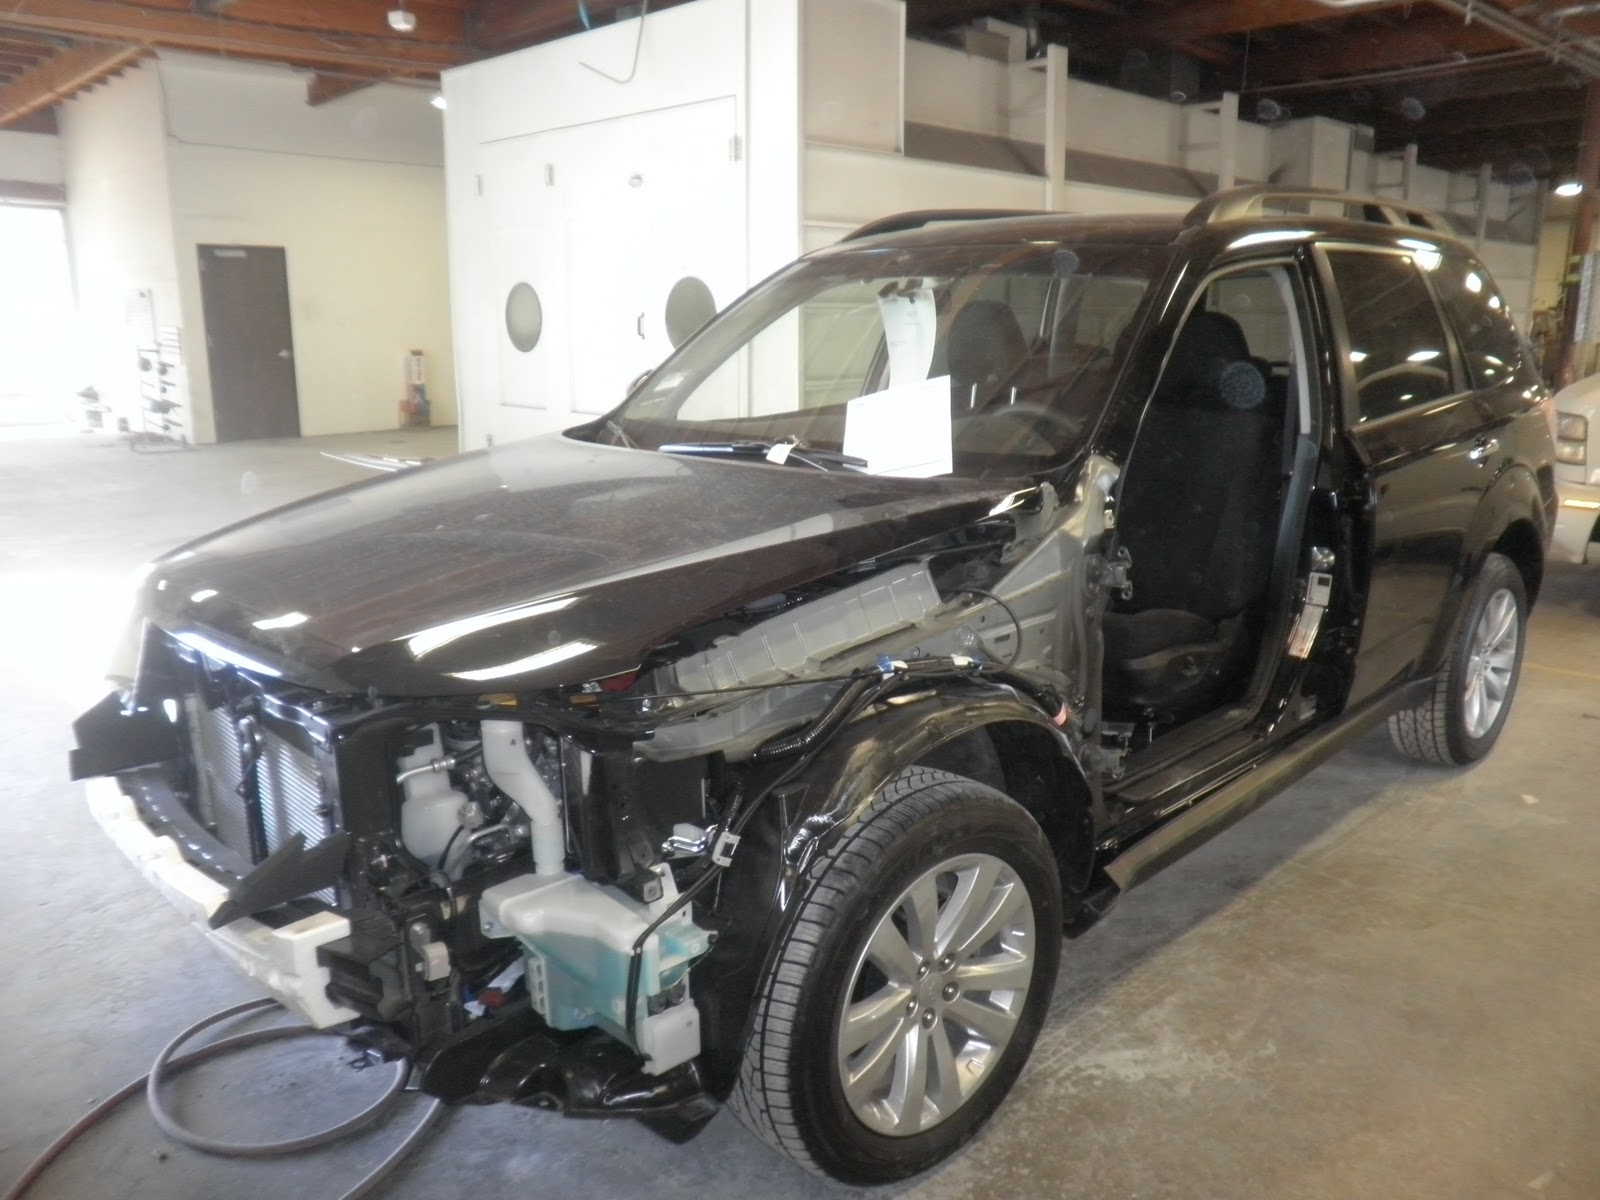 Auto BodyCollision RepairCar Paint In FremontHaywardUnion City - Subaru auto body repair